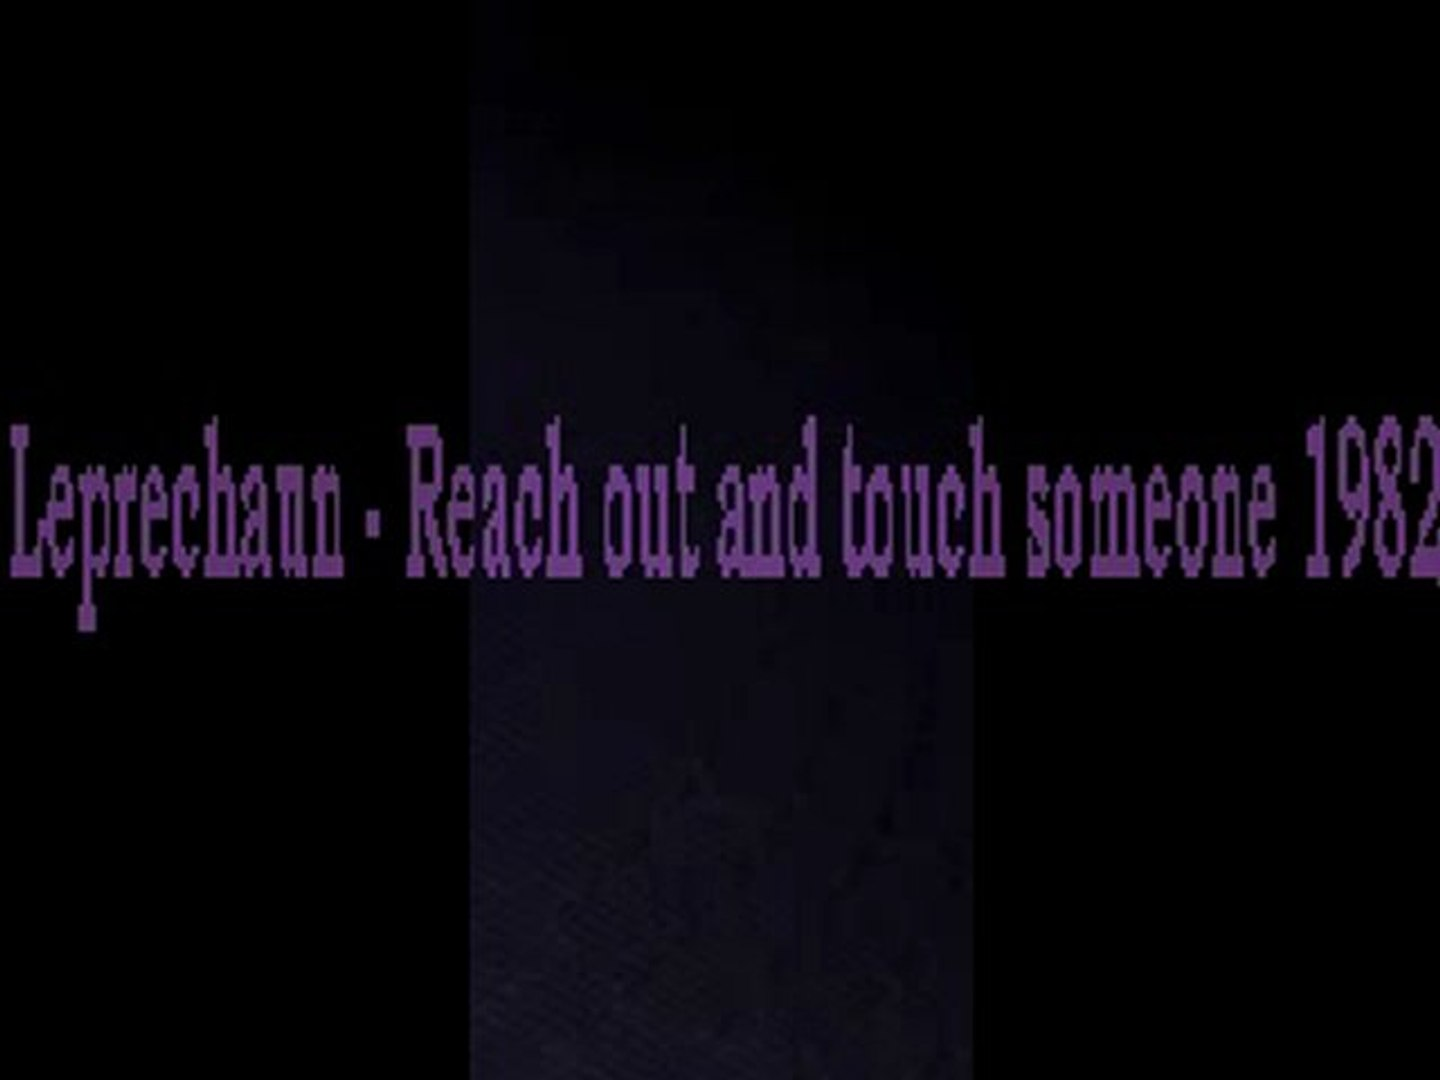 80's Funk  - Leprechaun - Reach out and touch someone 1982